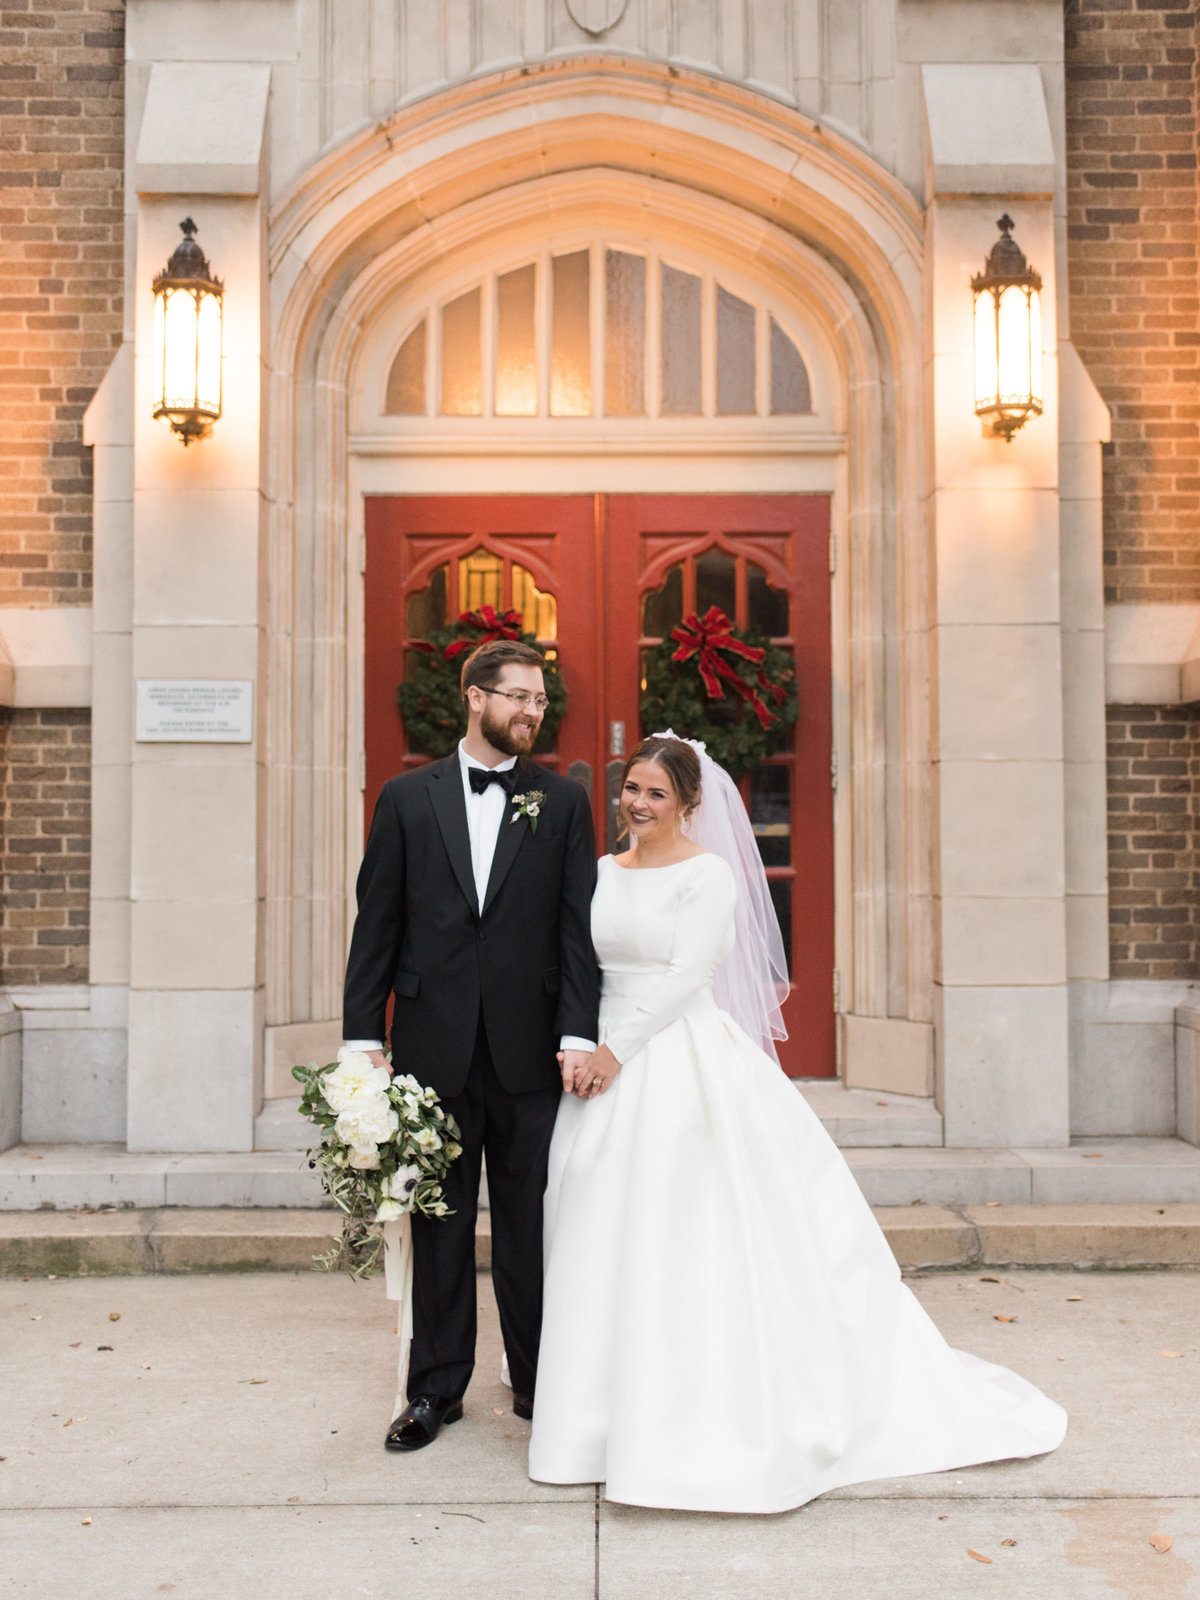 Courtney Hanson Photography - Festive Holiday Wedding in Dallas at Hickory Street Annex-0223